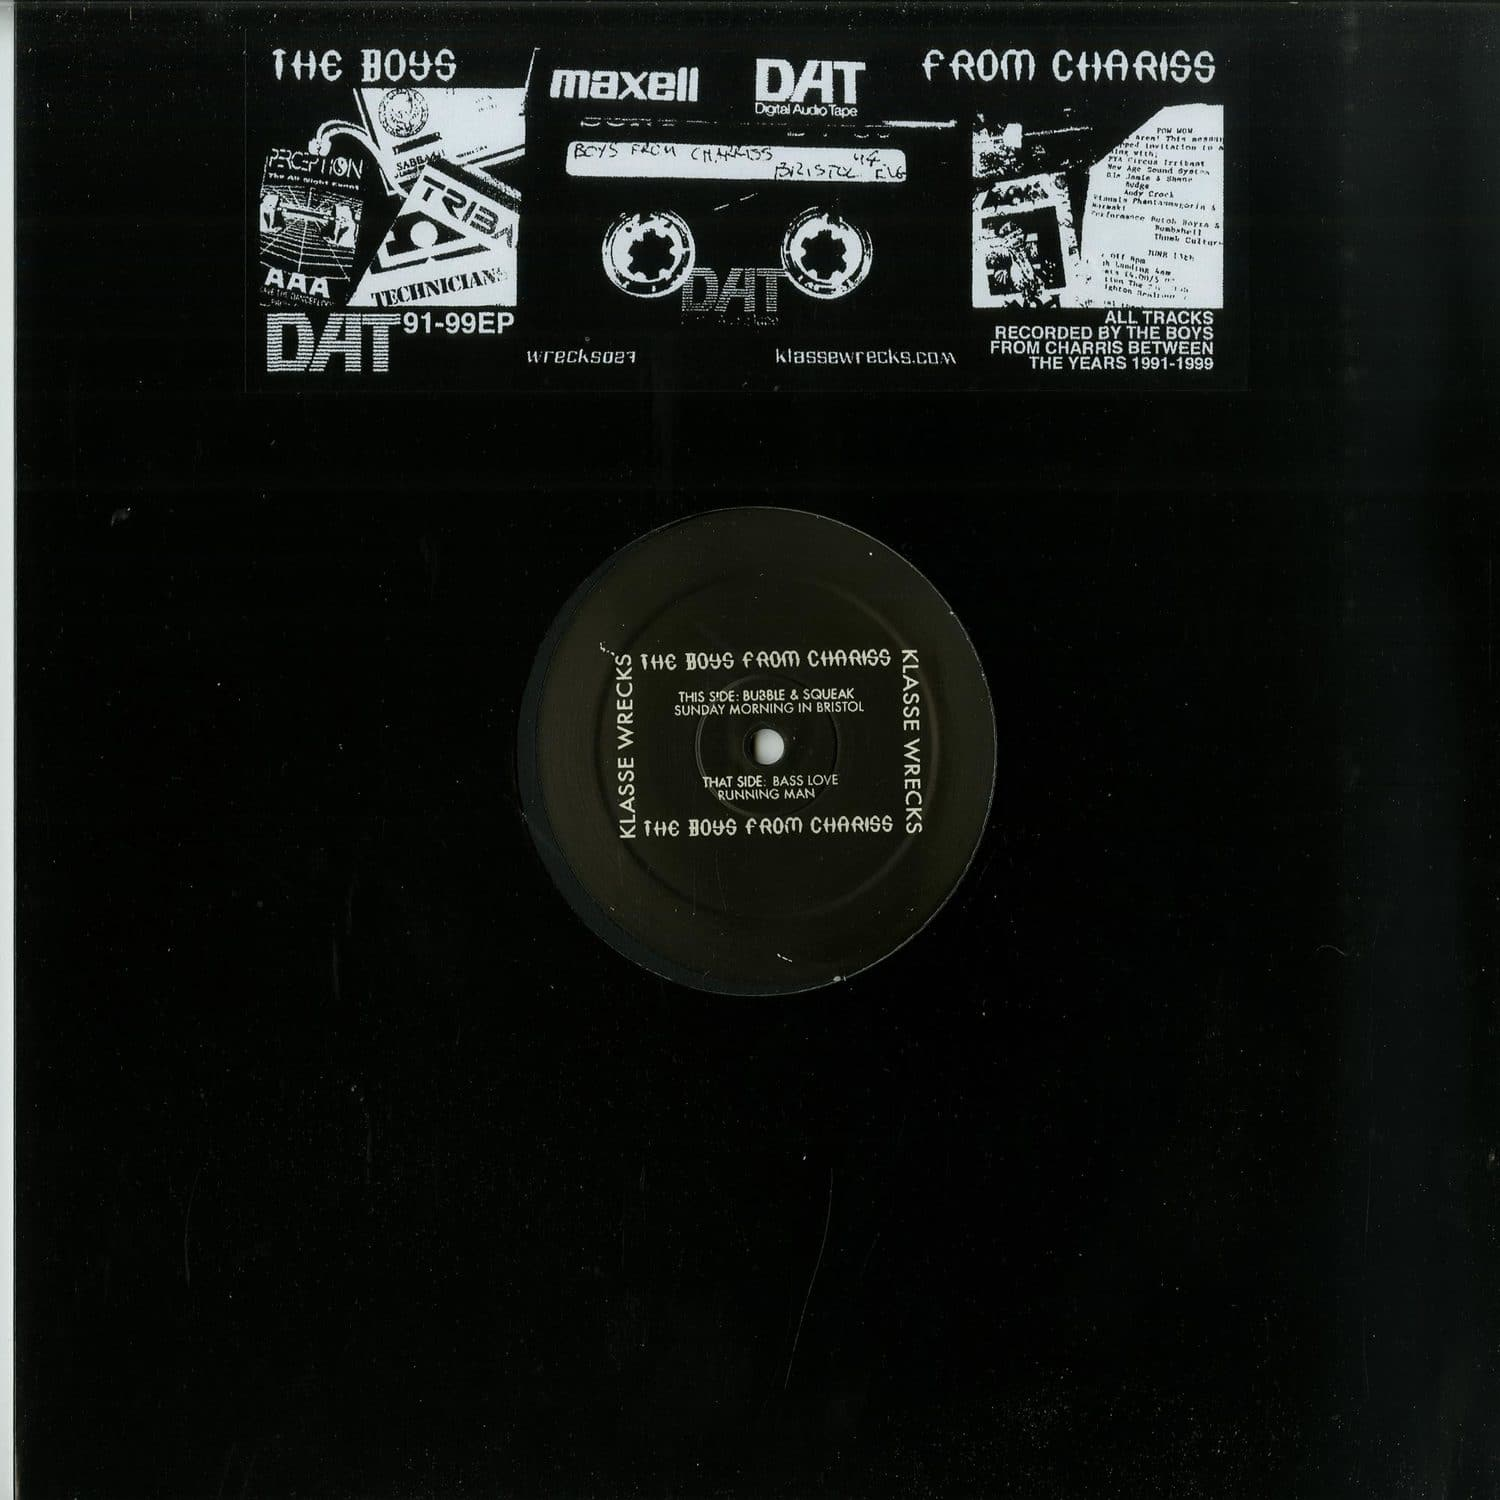 The Boys from Chariss - DAT 9199 EP